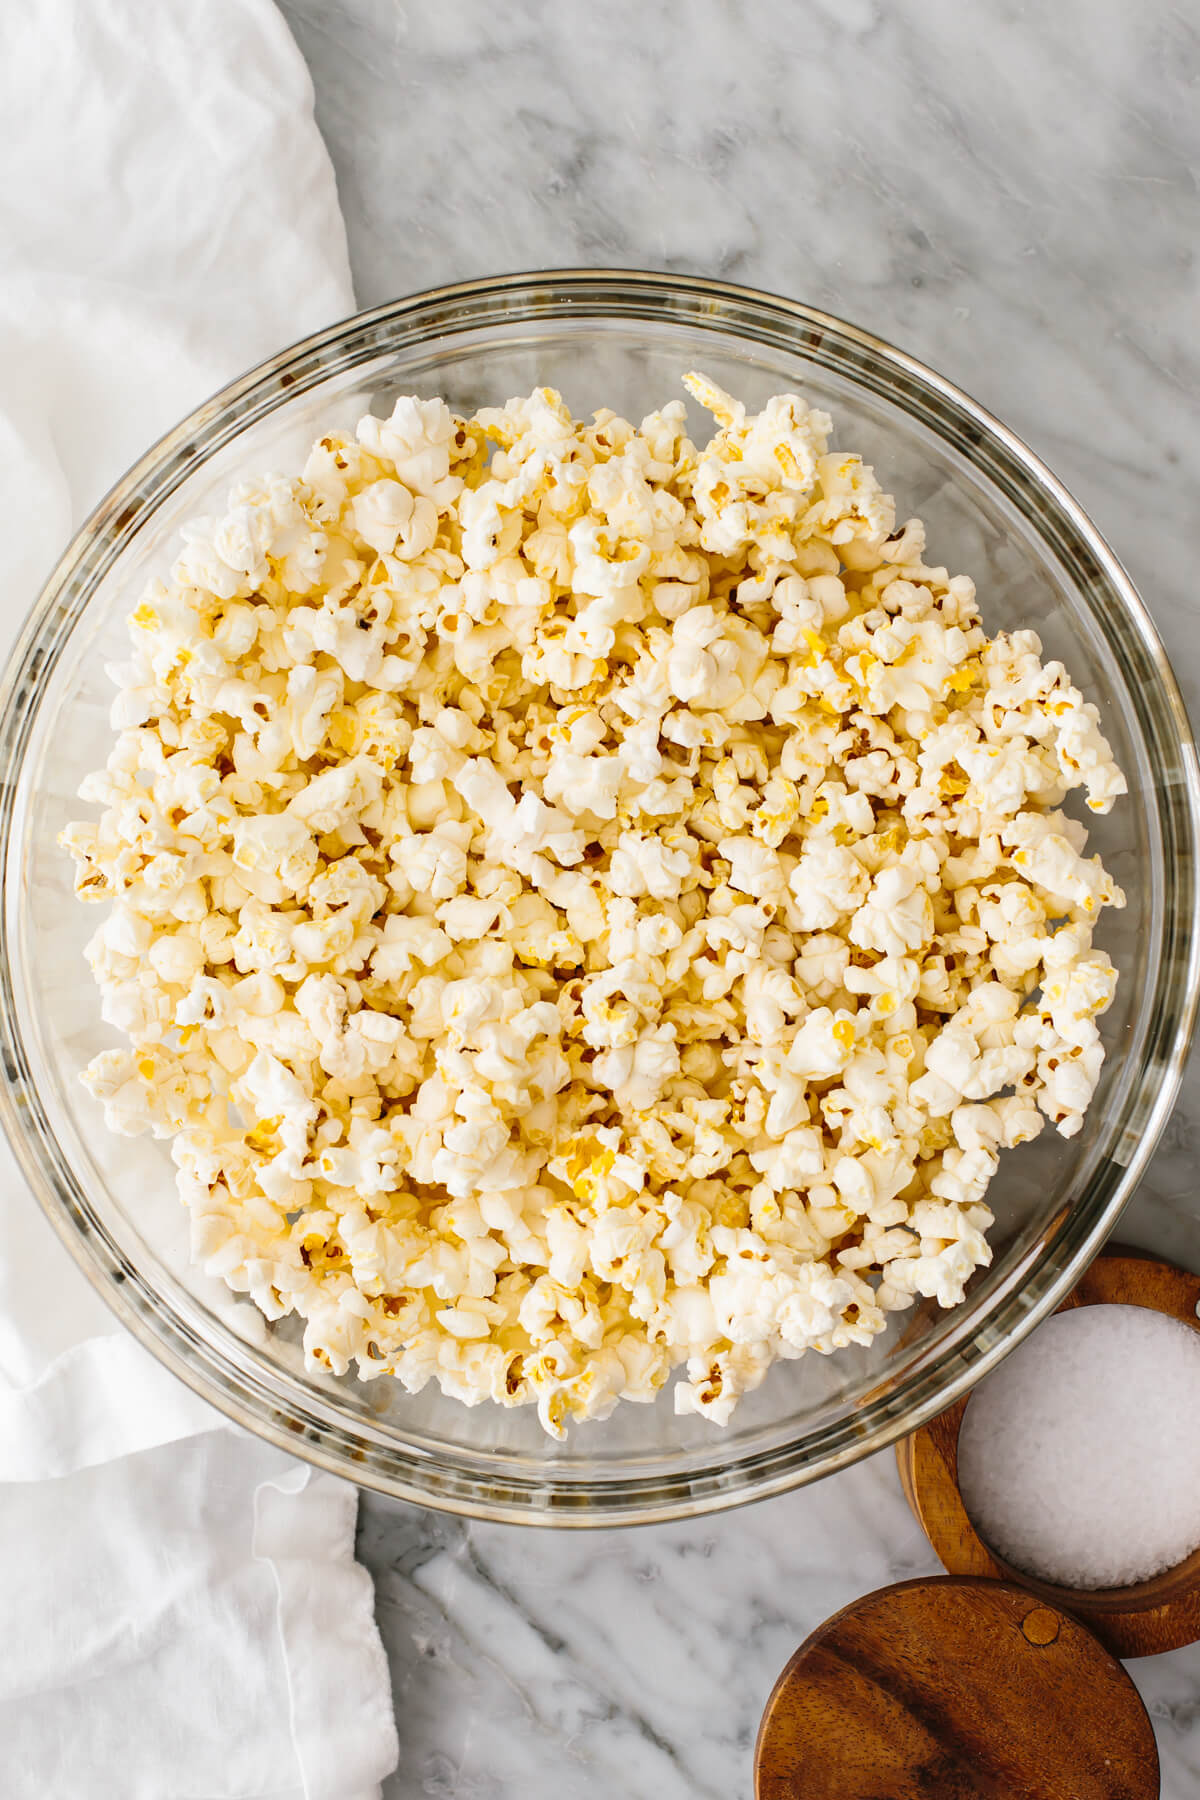 Microwave popcorn in a glass bowl on a table.